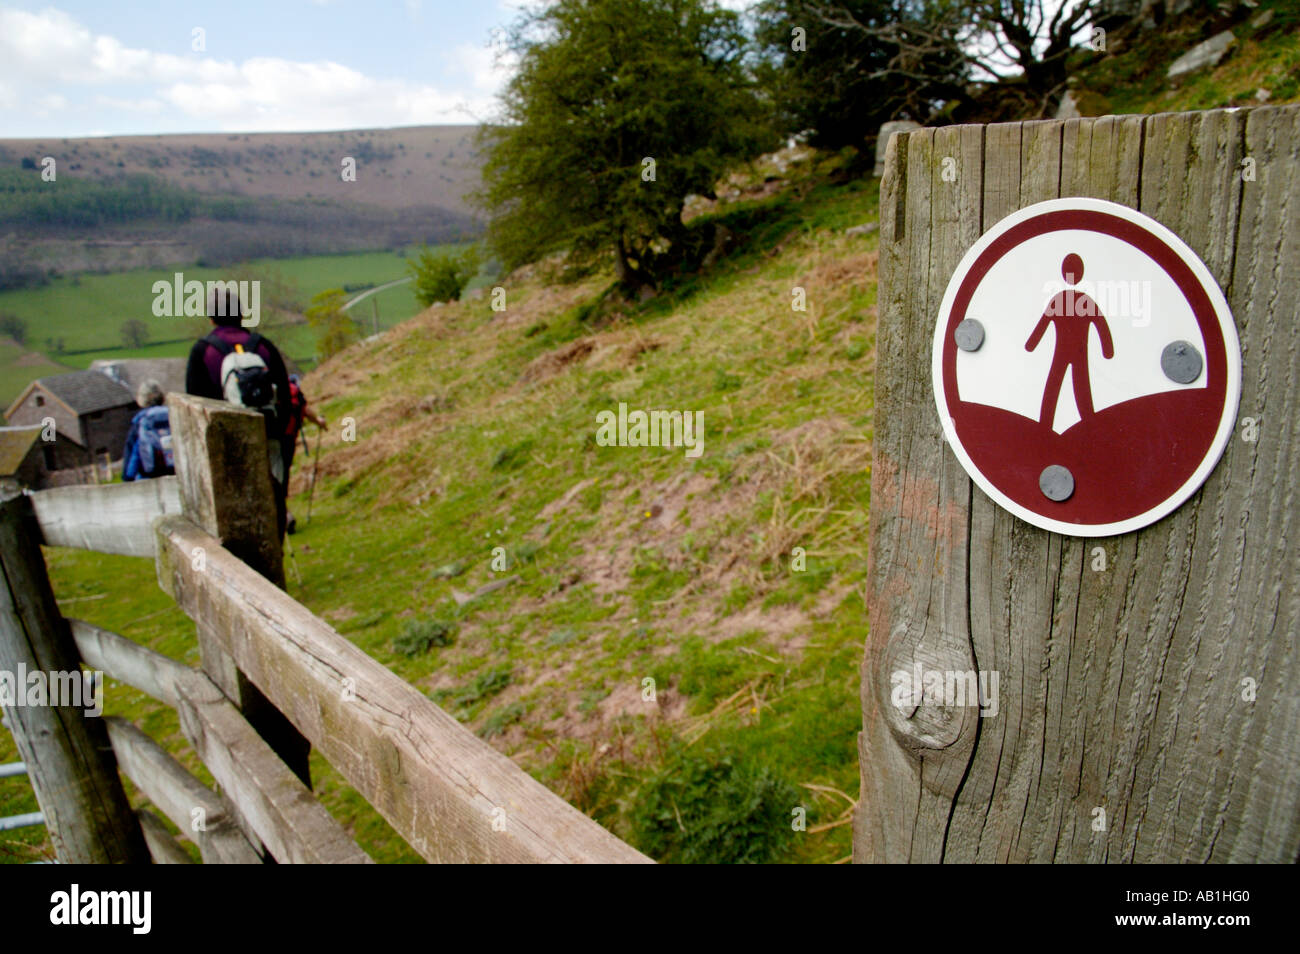 CROW Countryside and Rights of Way sign on footpath with people walking in Vale of Ewyas Monmouthshire South Wales UK - Stock Image